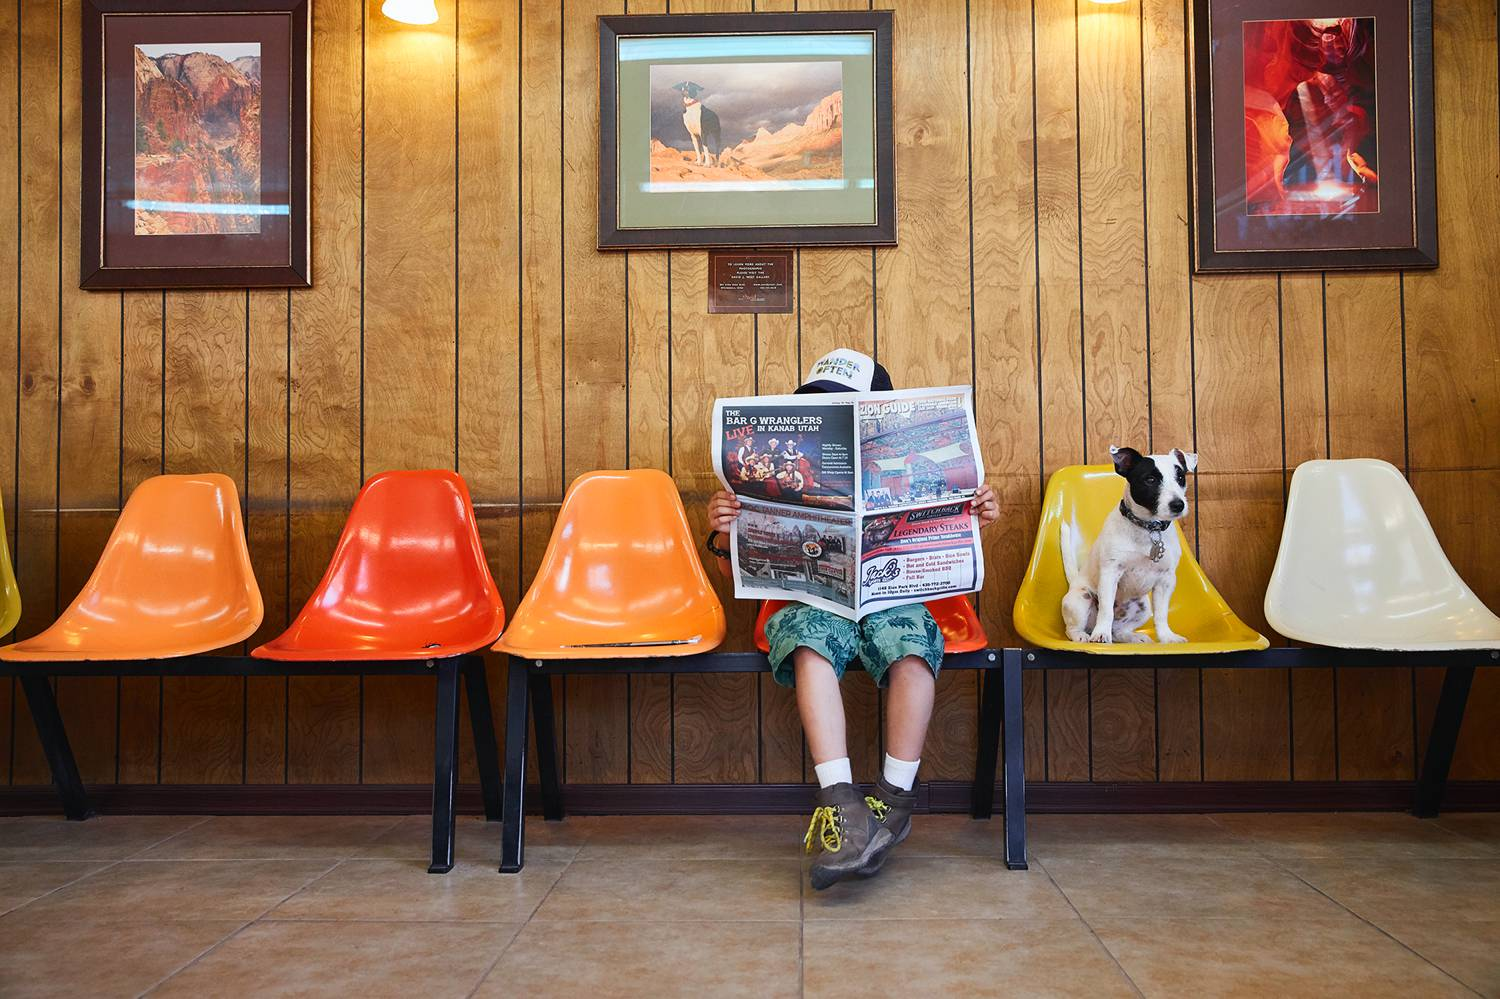 Photo: Candy Kennedy's documentary portrait shows a young boy sitting in a row of brightly colored chairs against a wood paneled wall. His face is shielded by the open newspaper he's holding. A small black and white dog sits in the chair next to him.